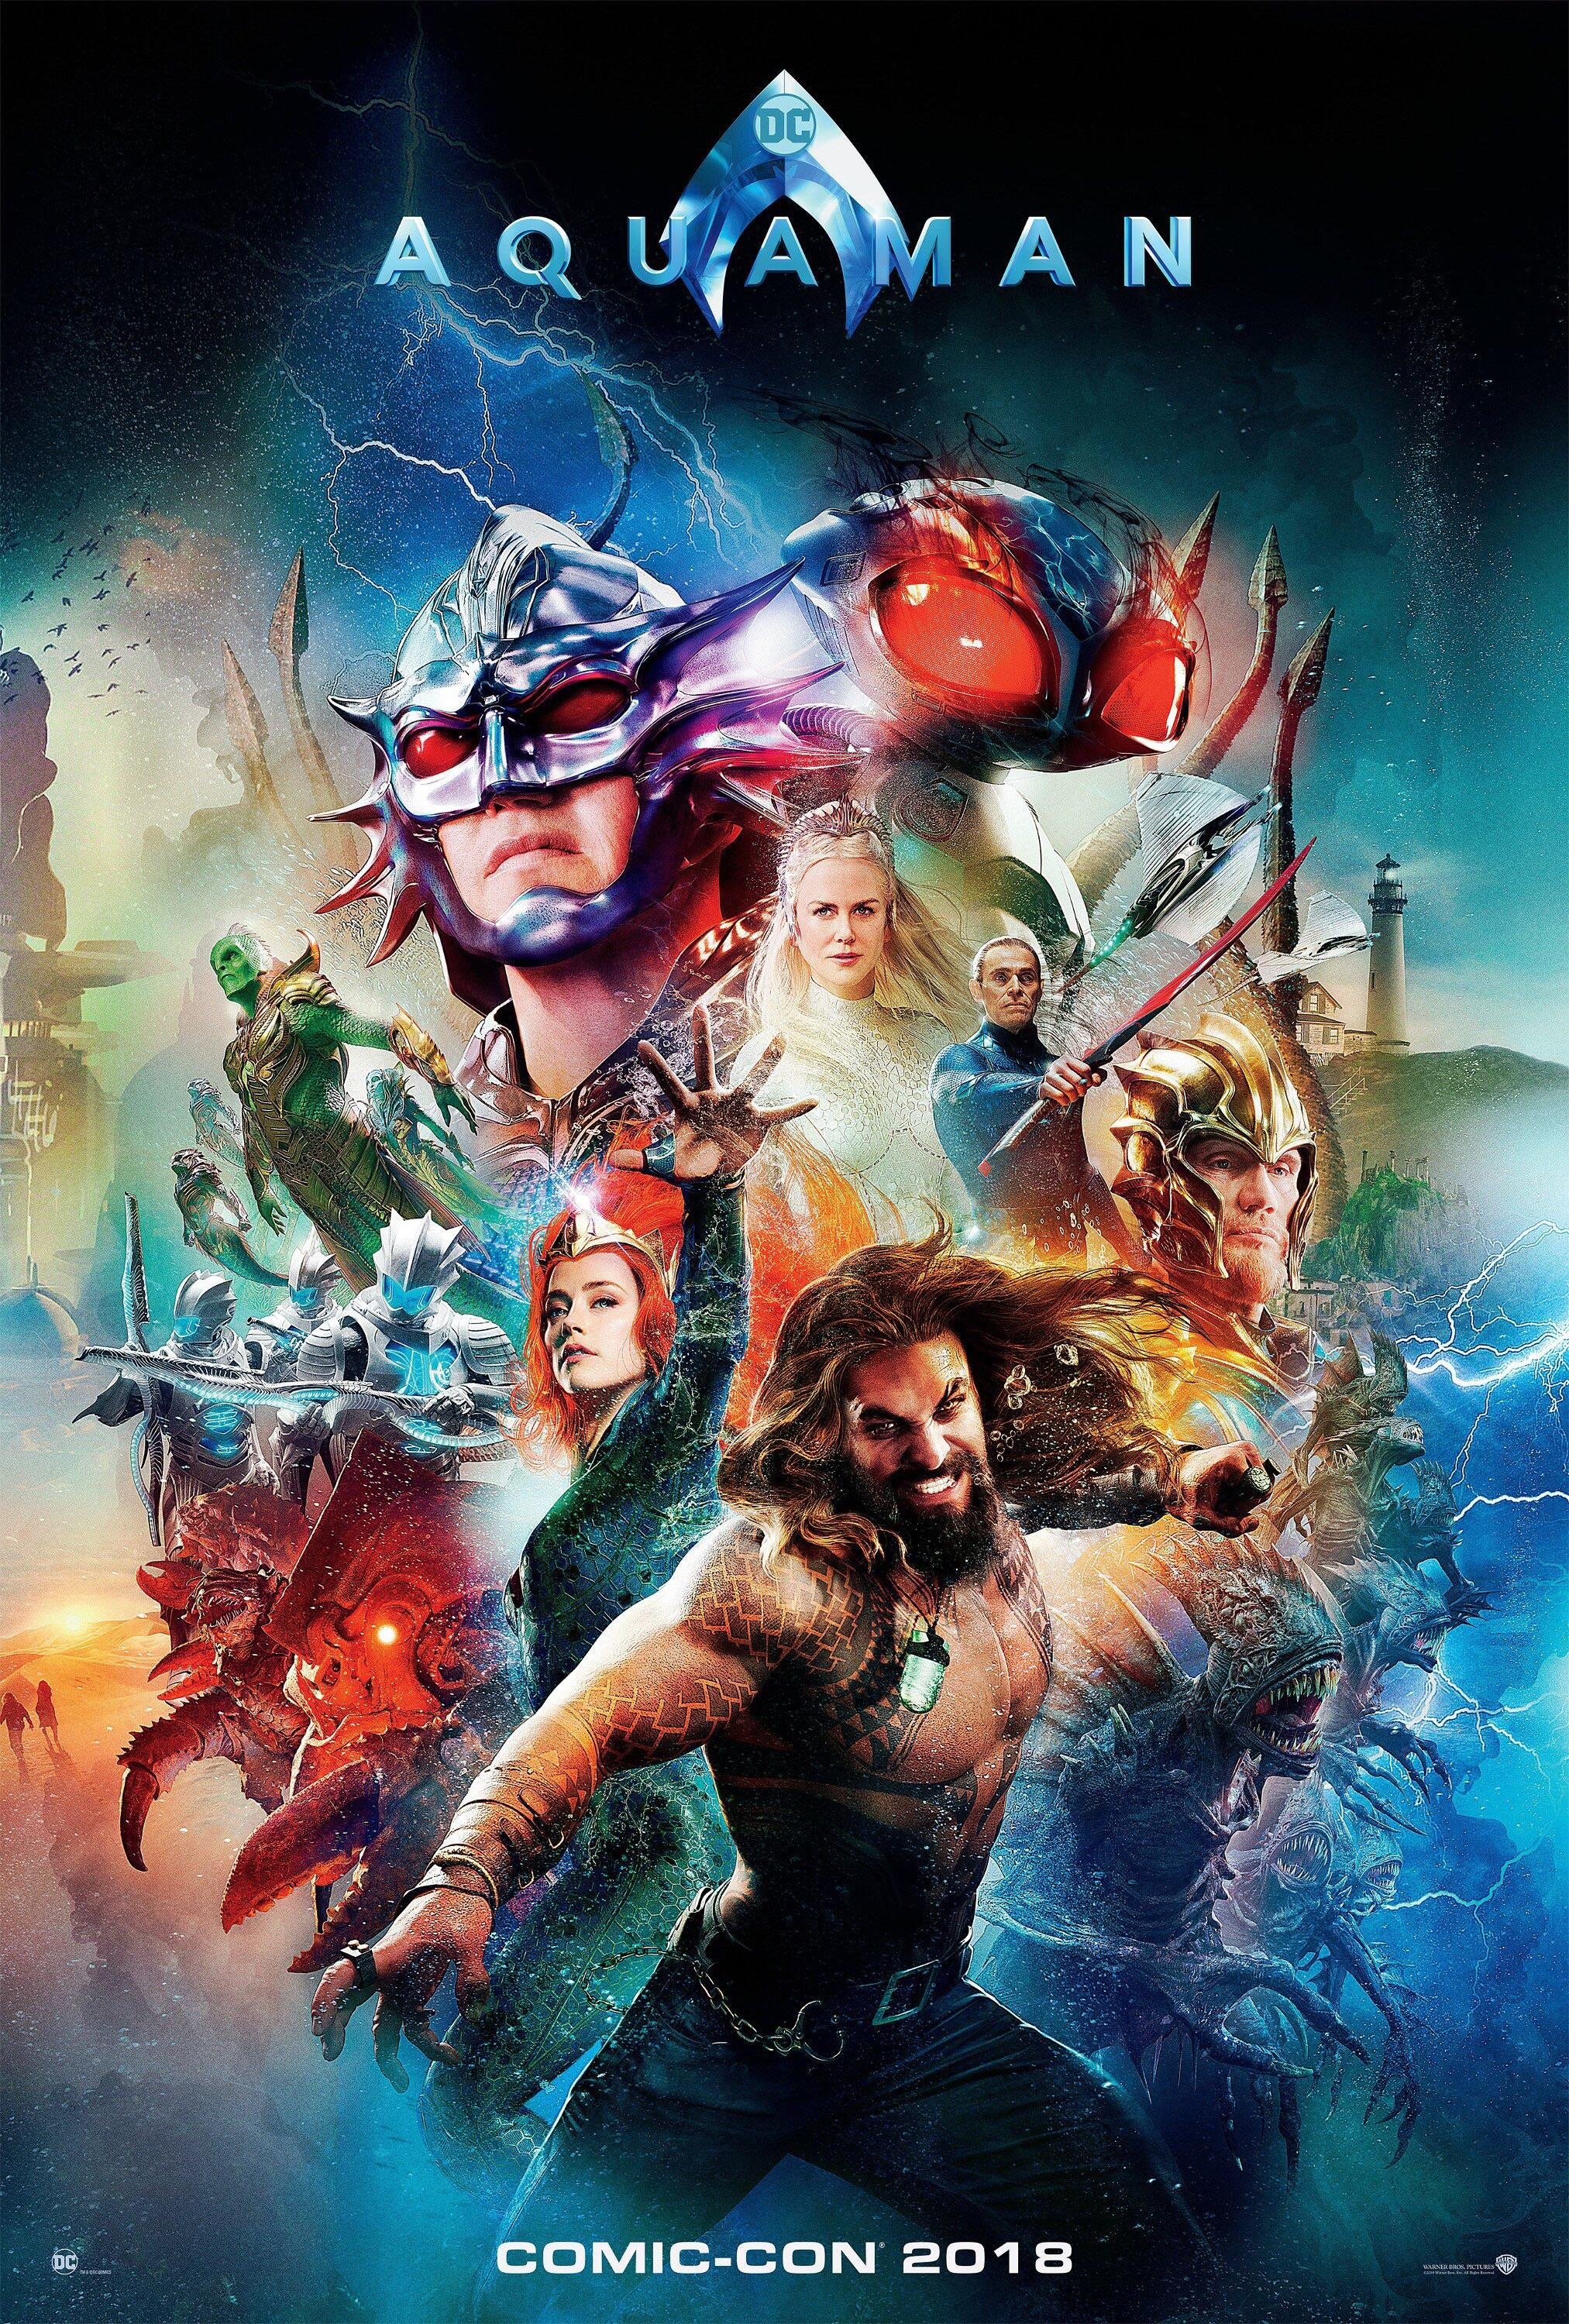 Aquaman (2018) Dual Audio HC-TSRip [Hindi-English] x264 850MB KSub